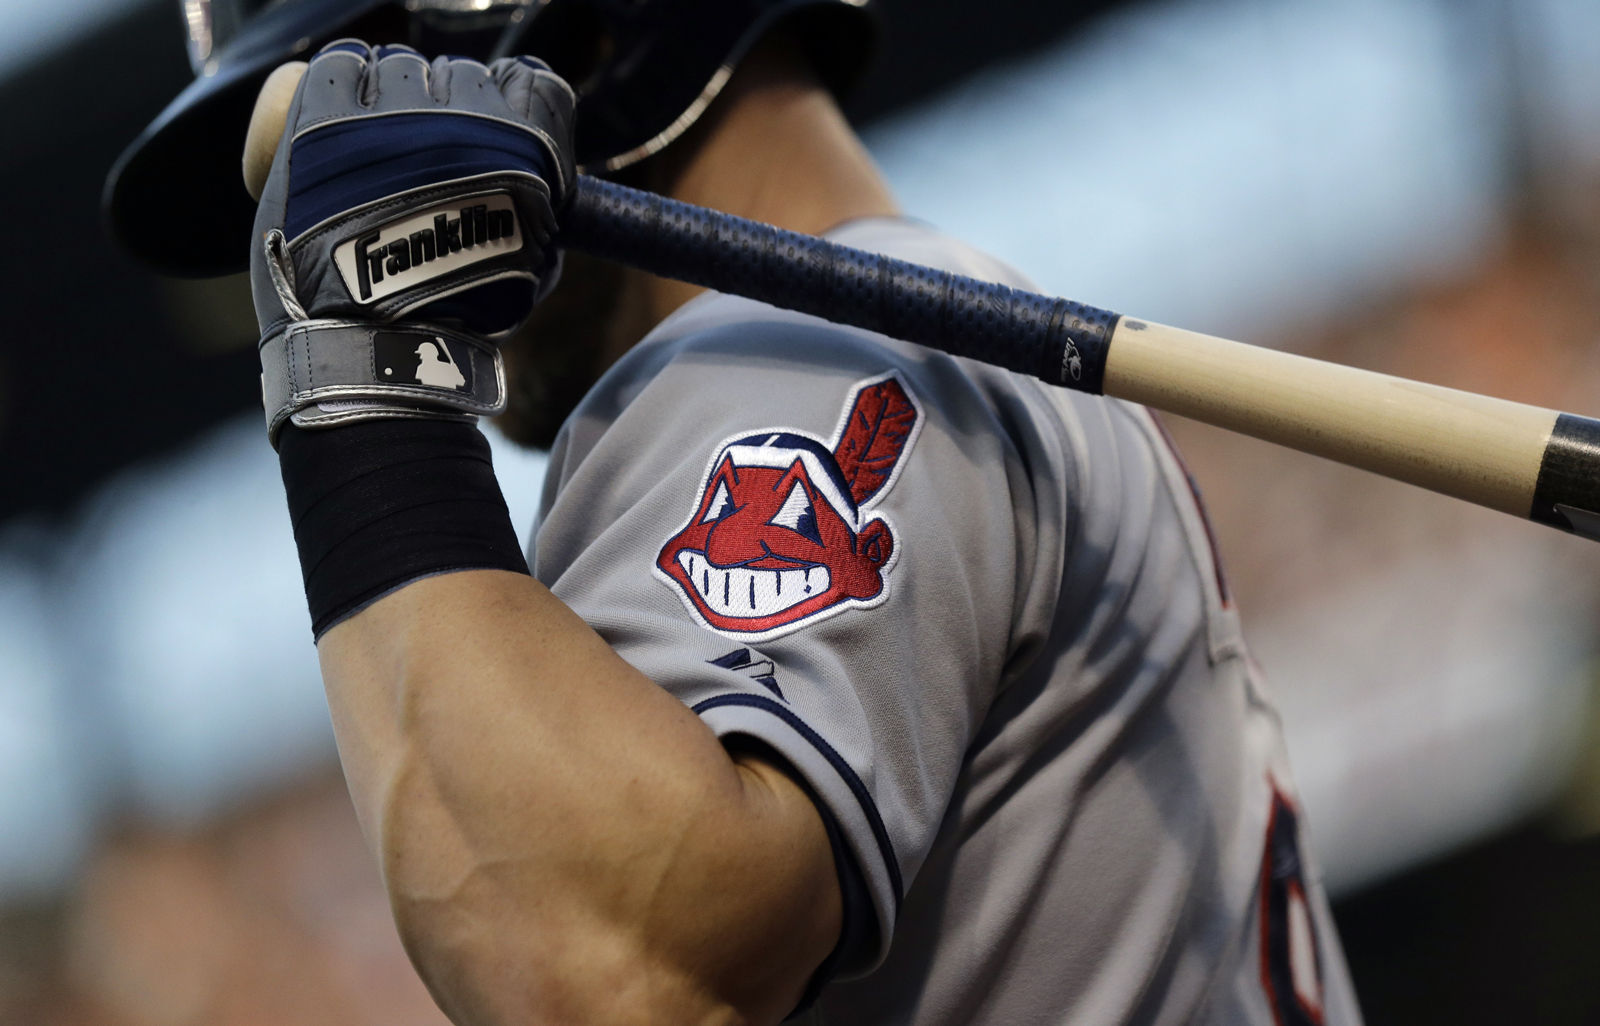 The Cleveland Indians logo, seen here on Ryan Raburn's jersey in 2015 during a game against the Orioles, has been in use since 1949, though in more recent years it has become less visible on the team's uniforms. The Indians' owner, Paul Dolan, has said that he prefers to keep the logo in a limited capacity and expects a resolution within a couple of years.  (AP Photo/Patrick Semansky)